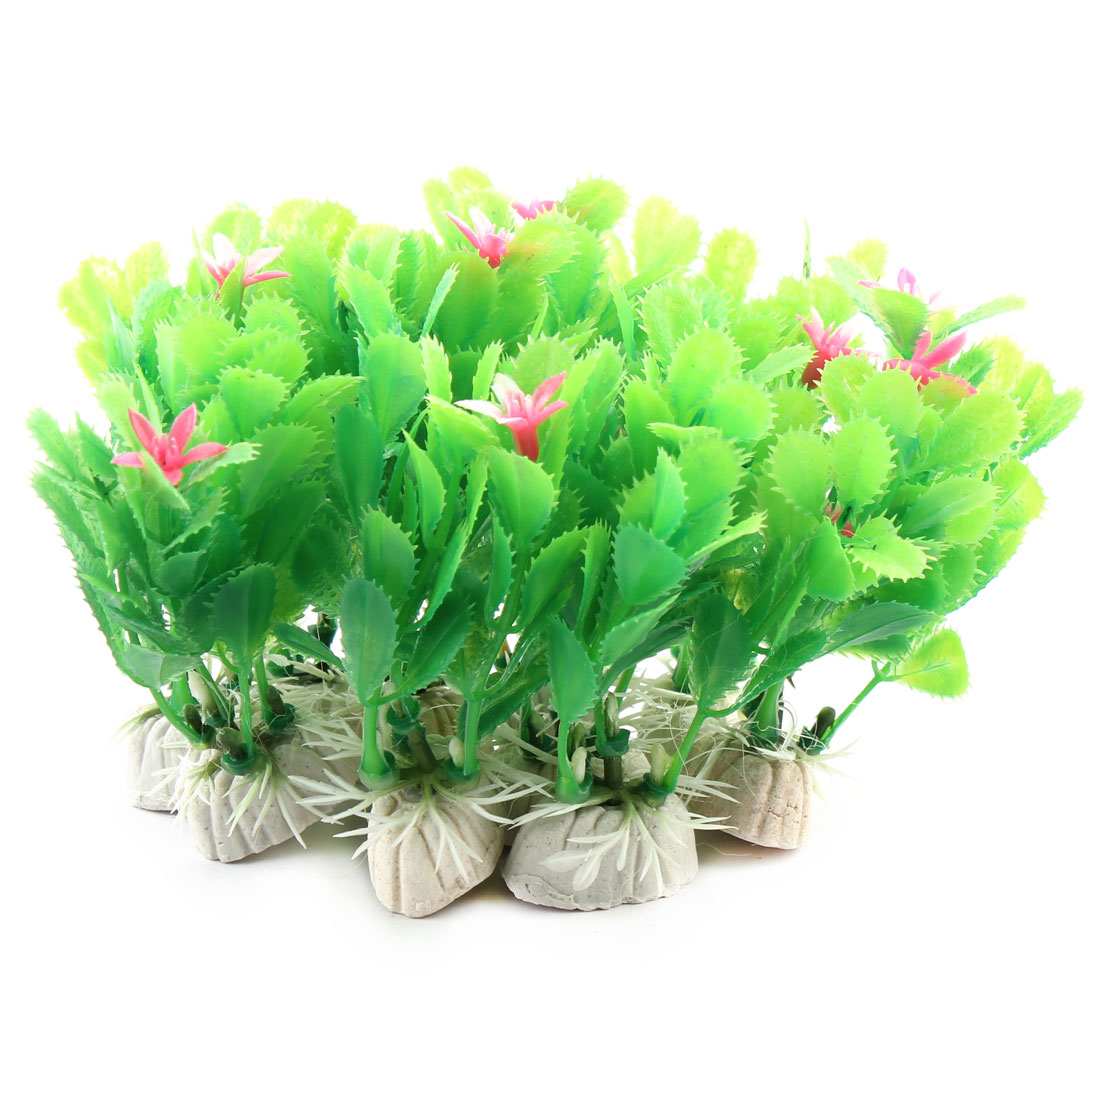 10 PCS Green Fish Tank Aquarium Plants Grass Ornament